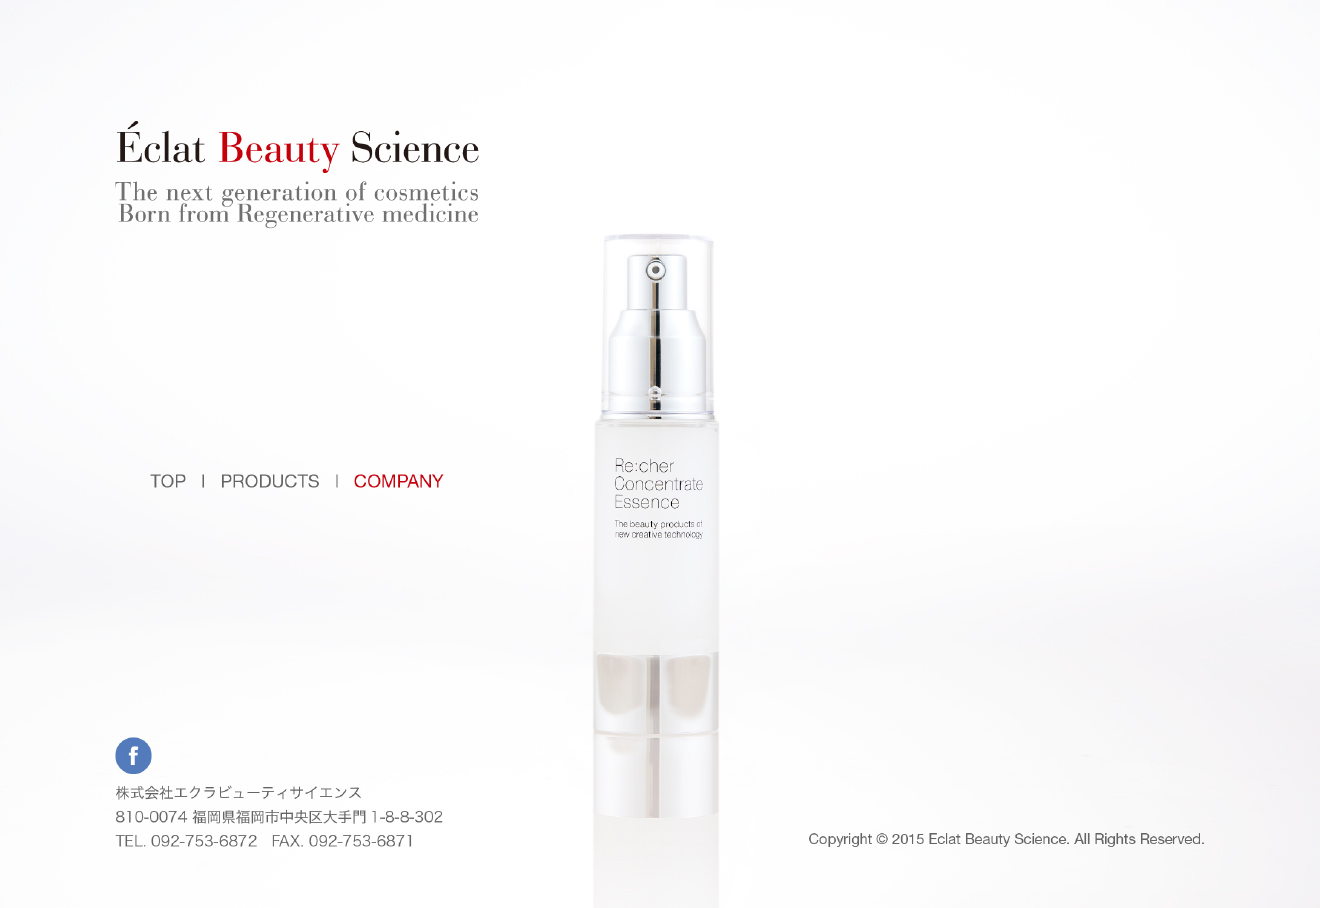 Eclat beauty science Website